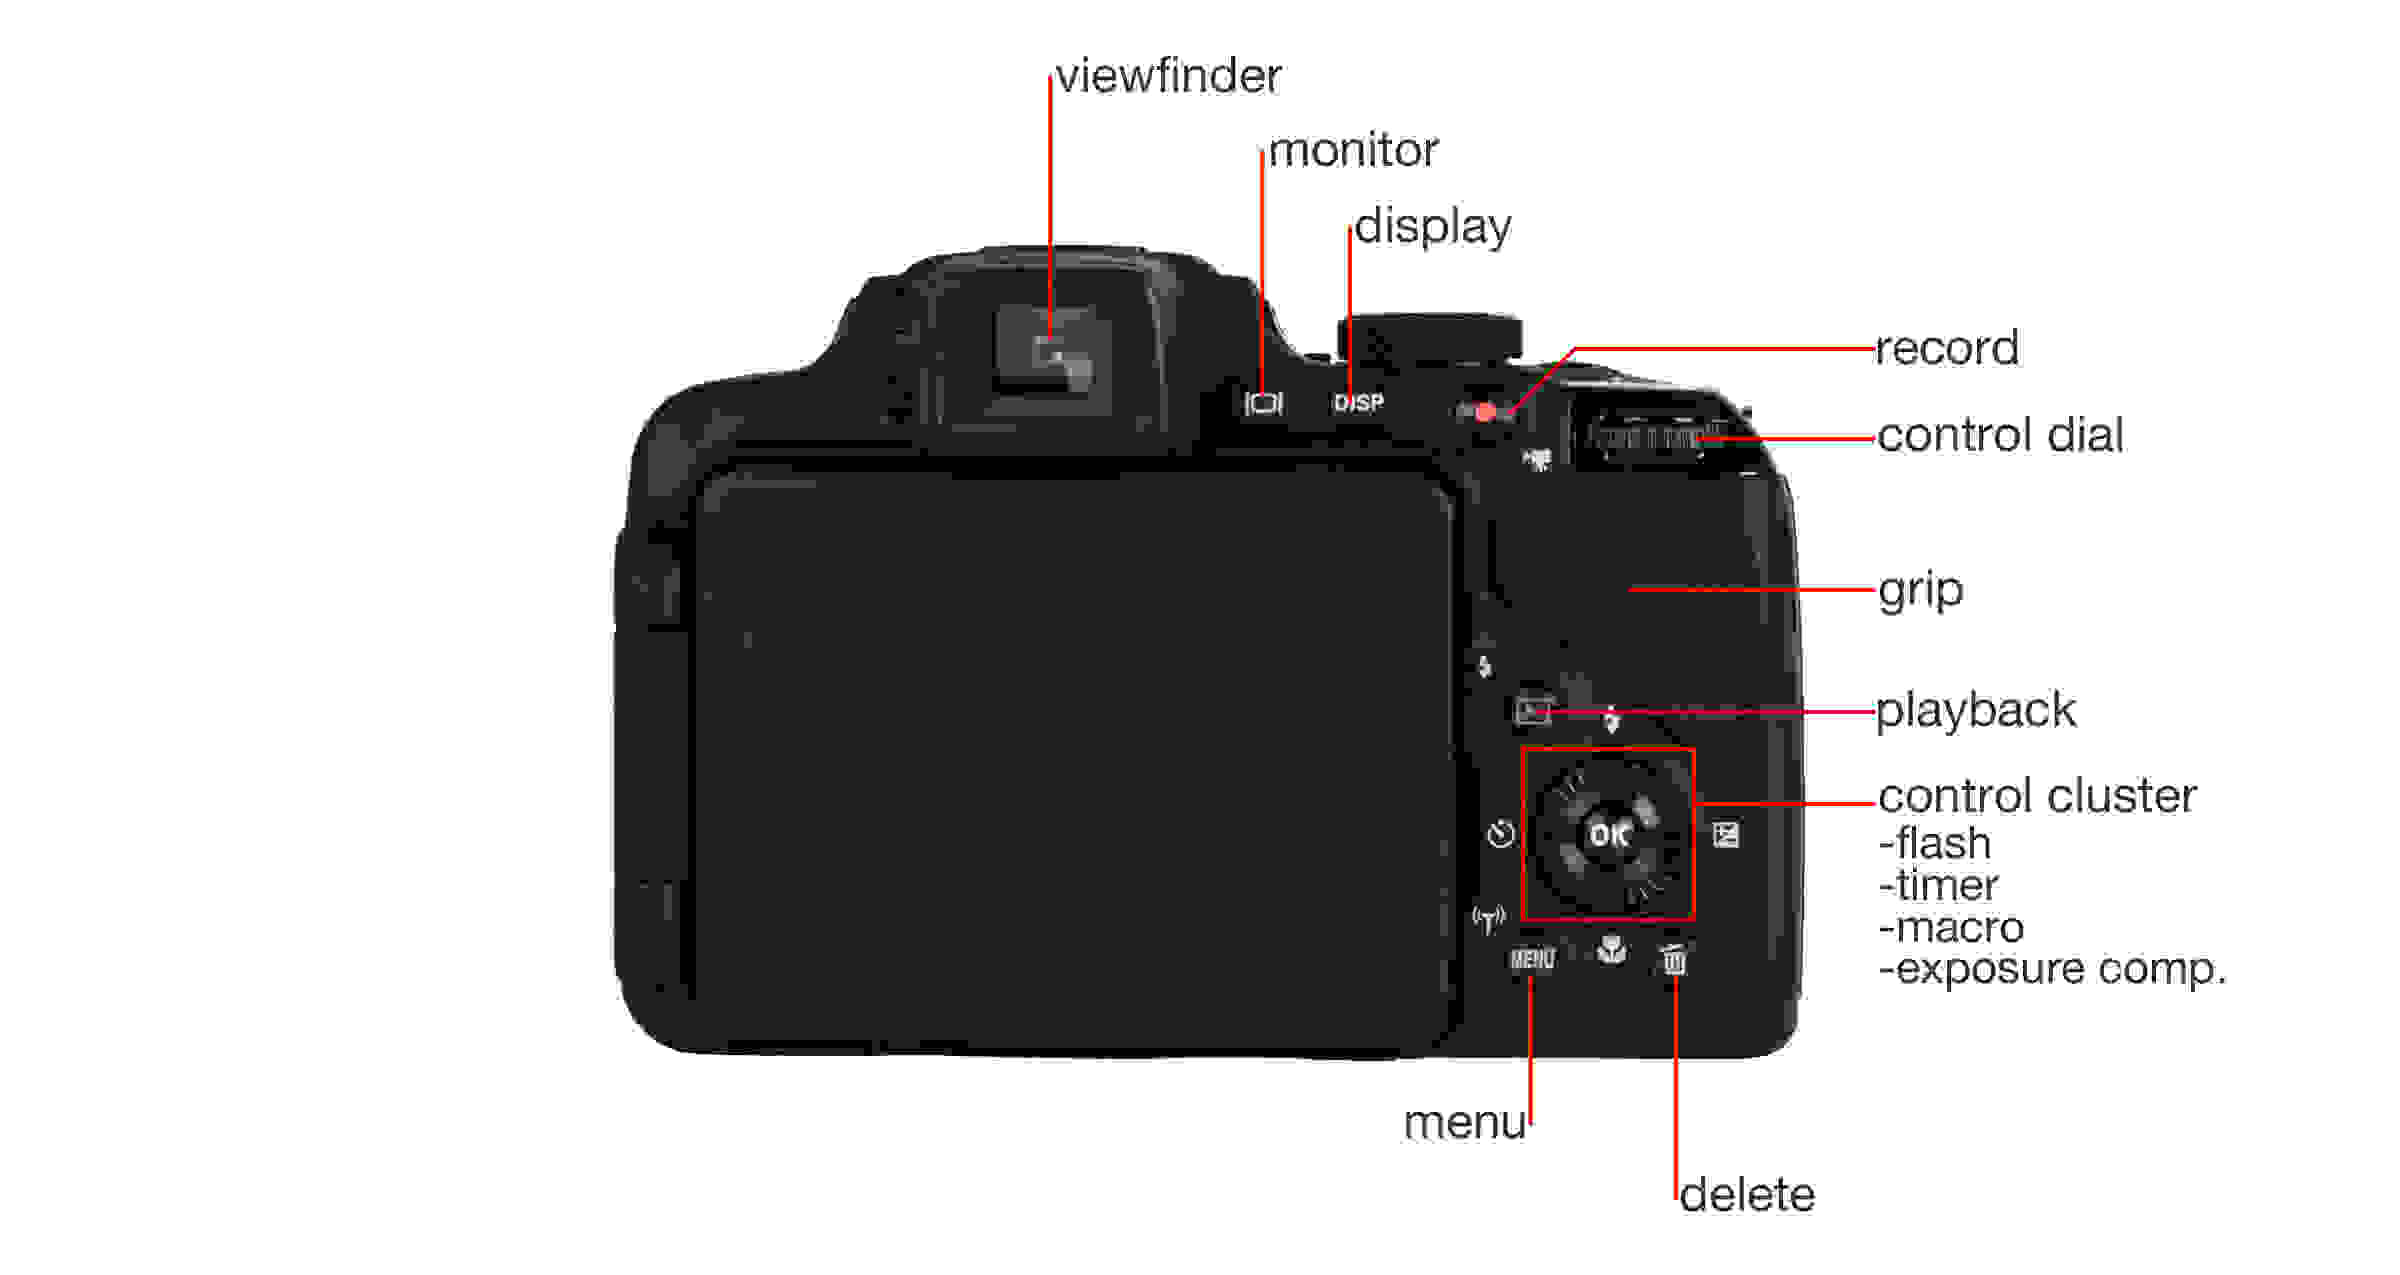 A breakdown of the Nikon Coolpix P600's buttons, controls, and features.